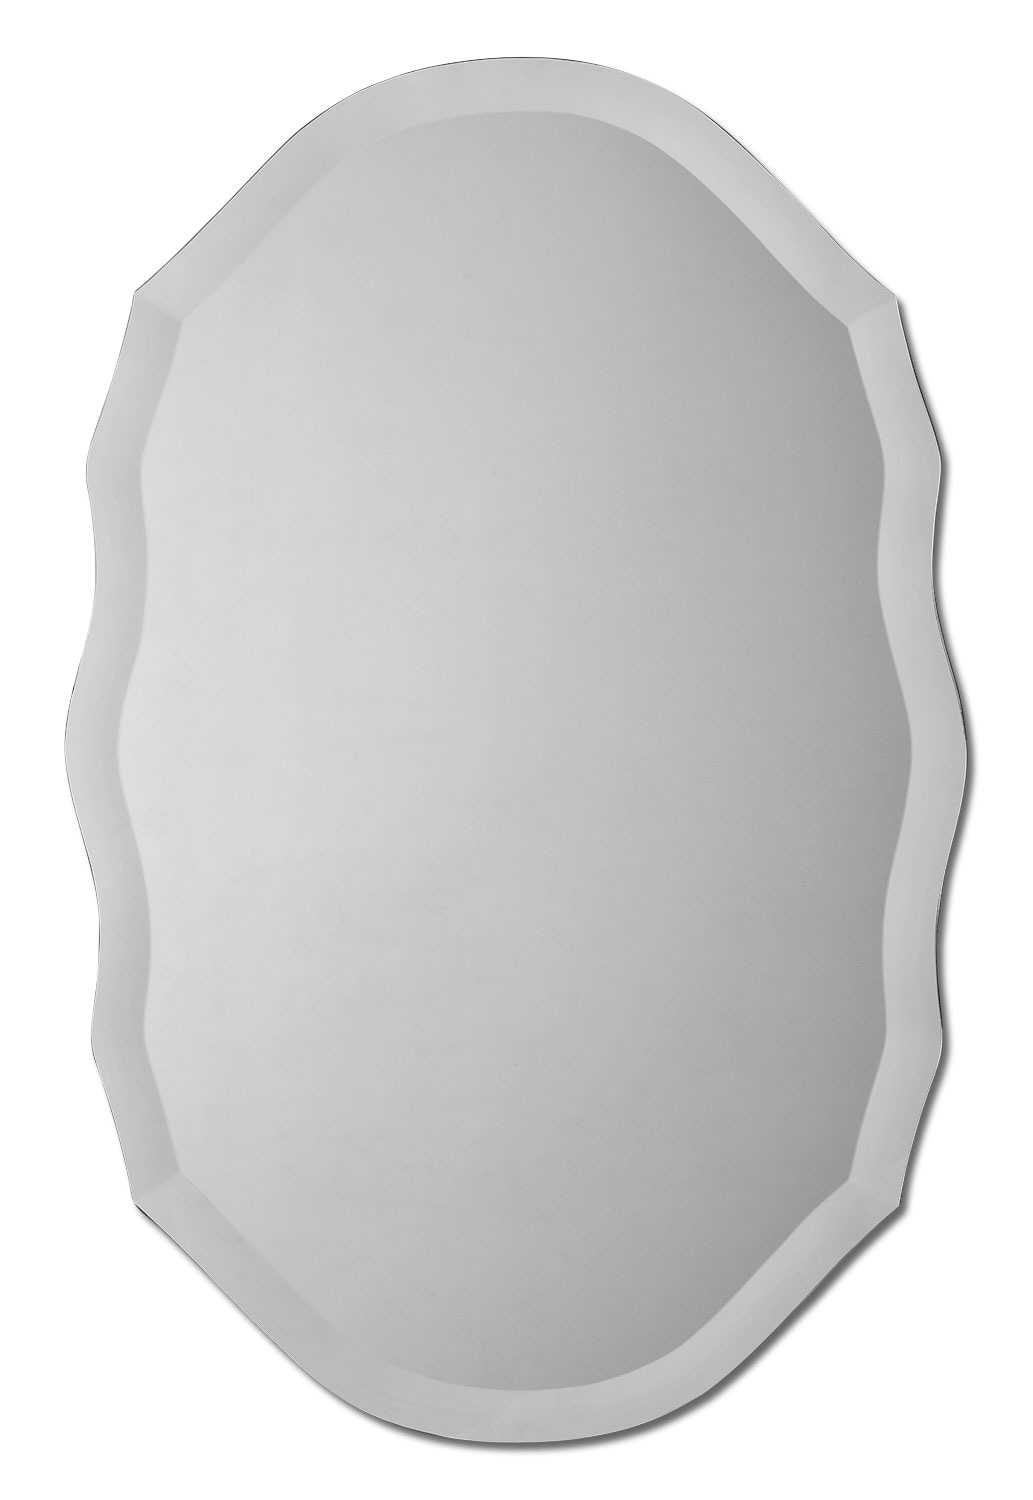 Home Accessories - Ashfield Mirror